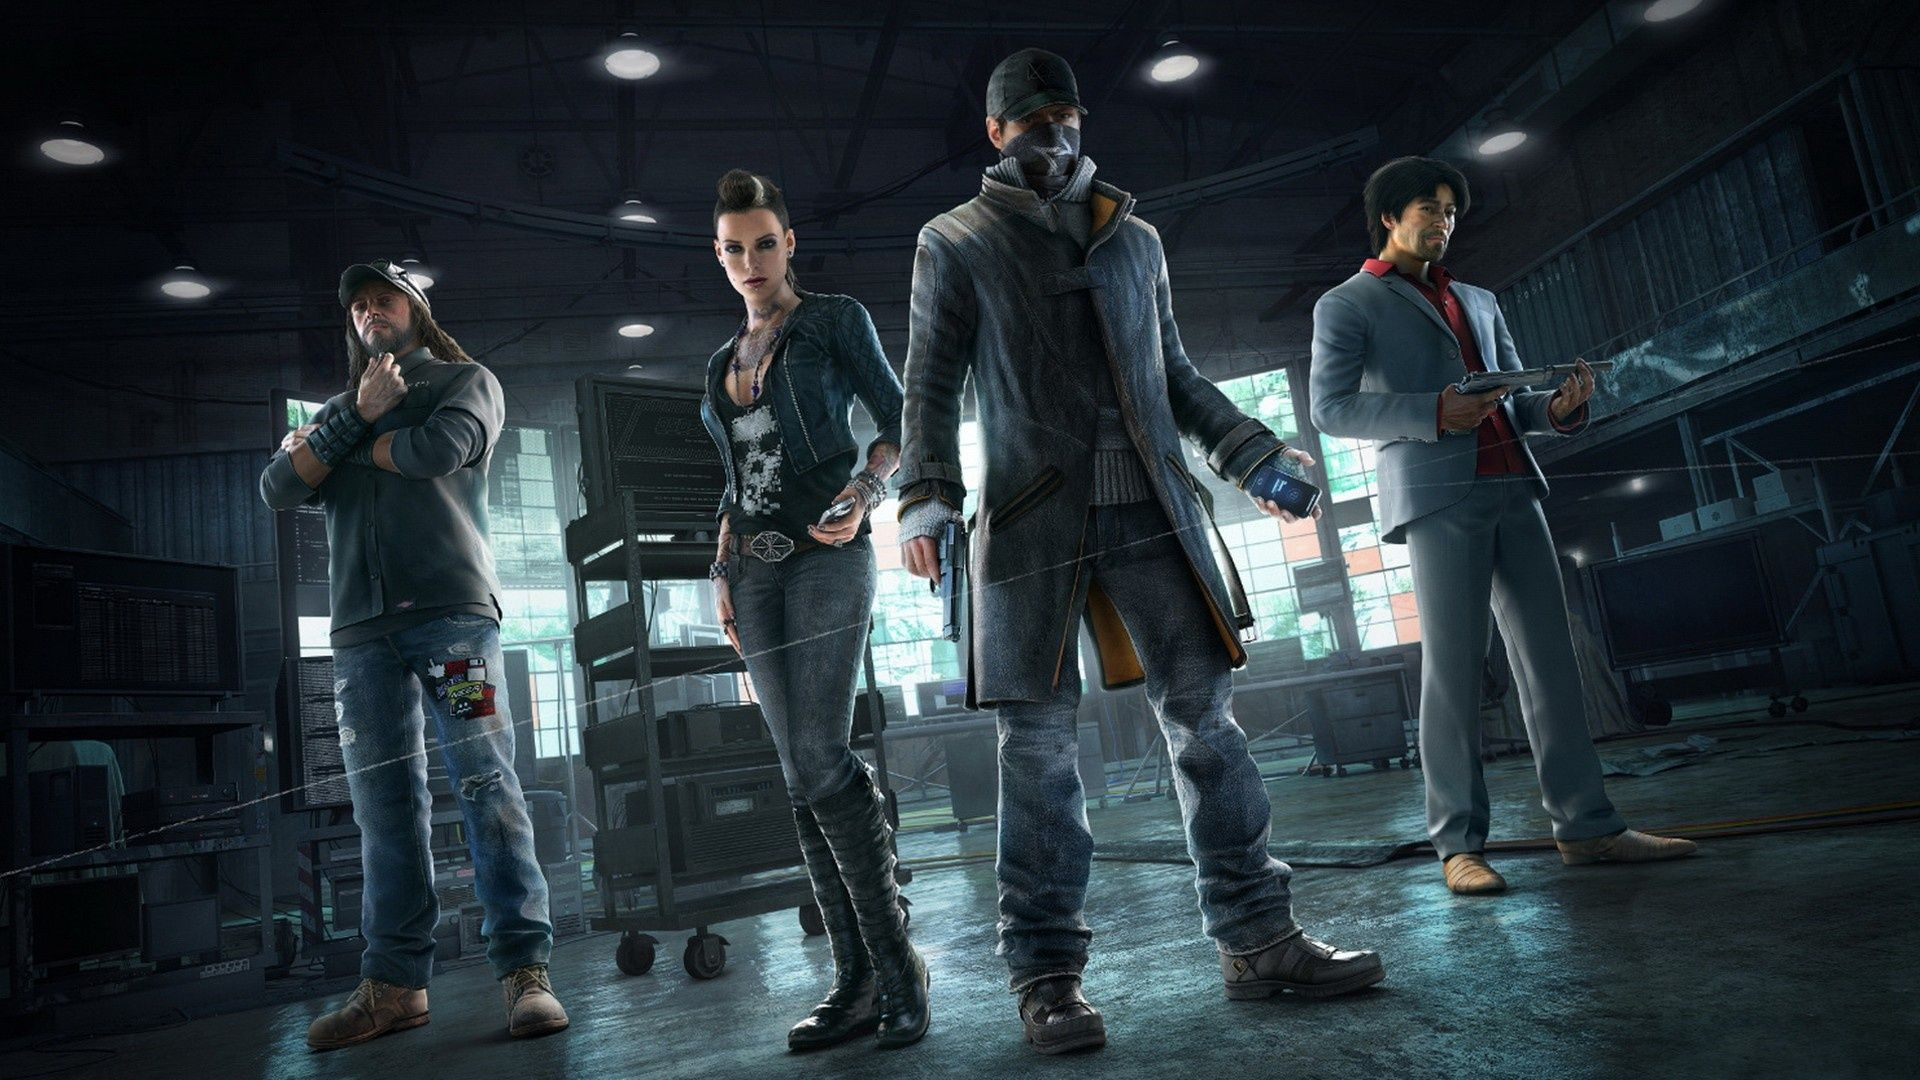 Watch Dogs Wallpaper 1080p Wallpaper Wrench Watch Dogs